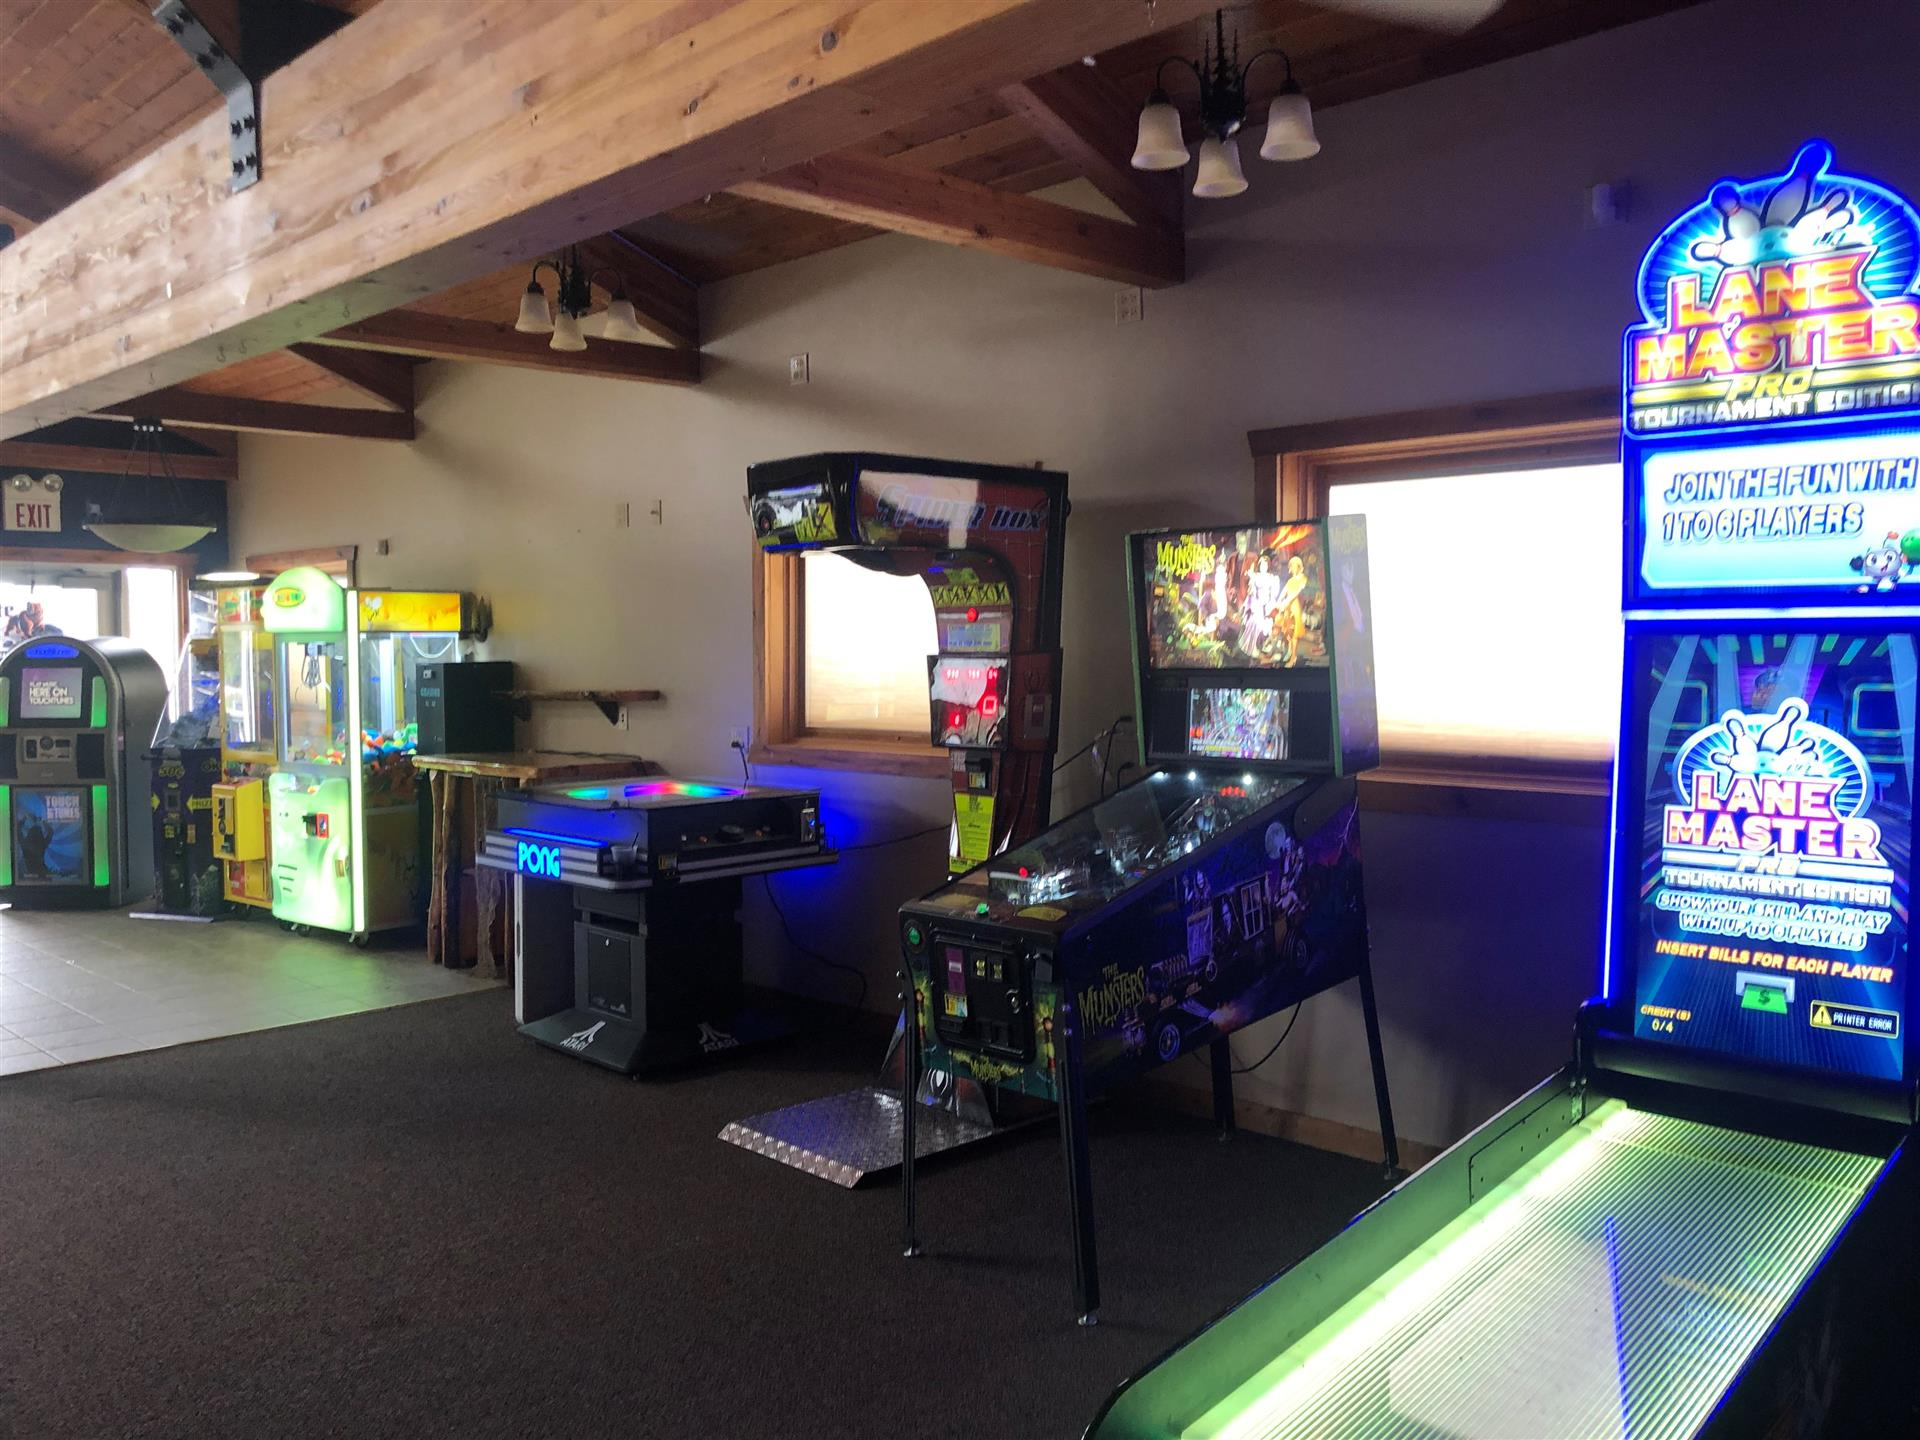 multiple arcade games in an open room